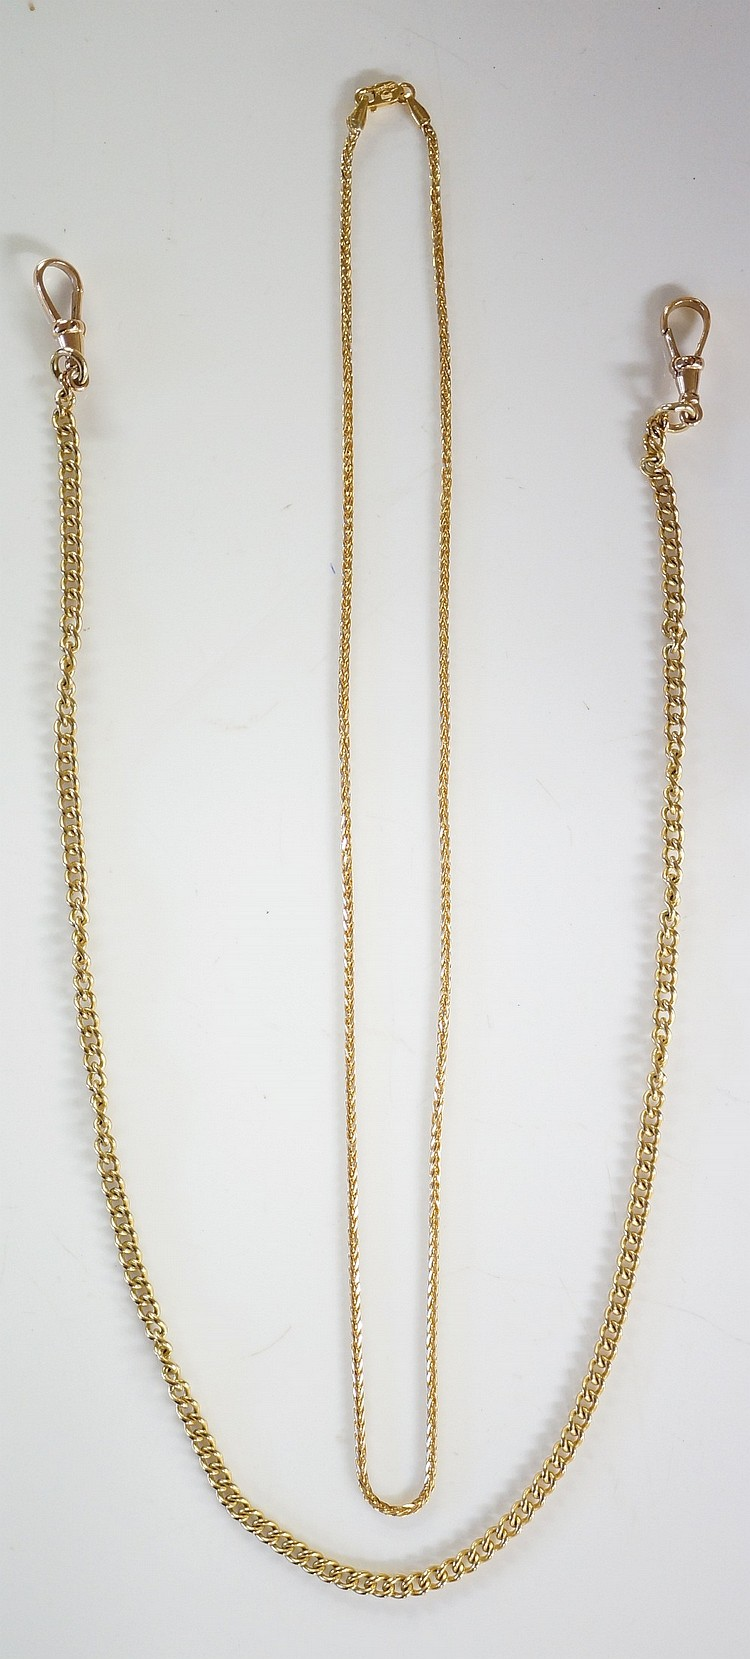 A 9ct gold curb link chain, 46cm long, 18gms; an Italian 18ct yellow gold c